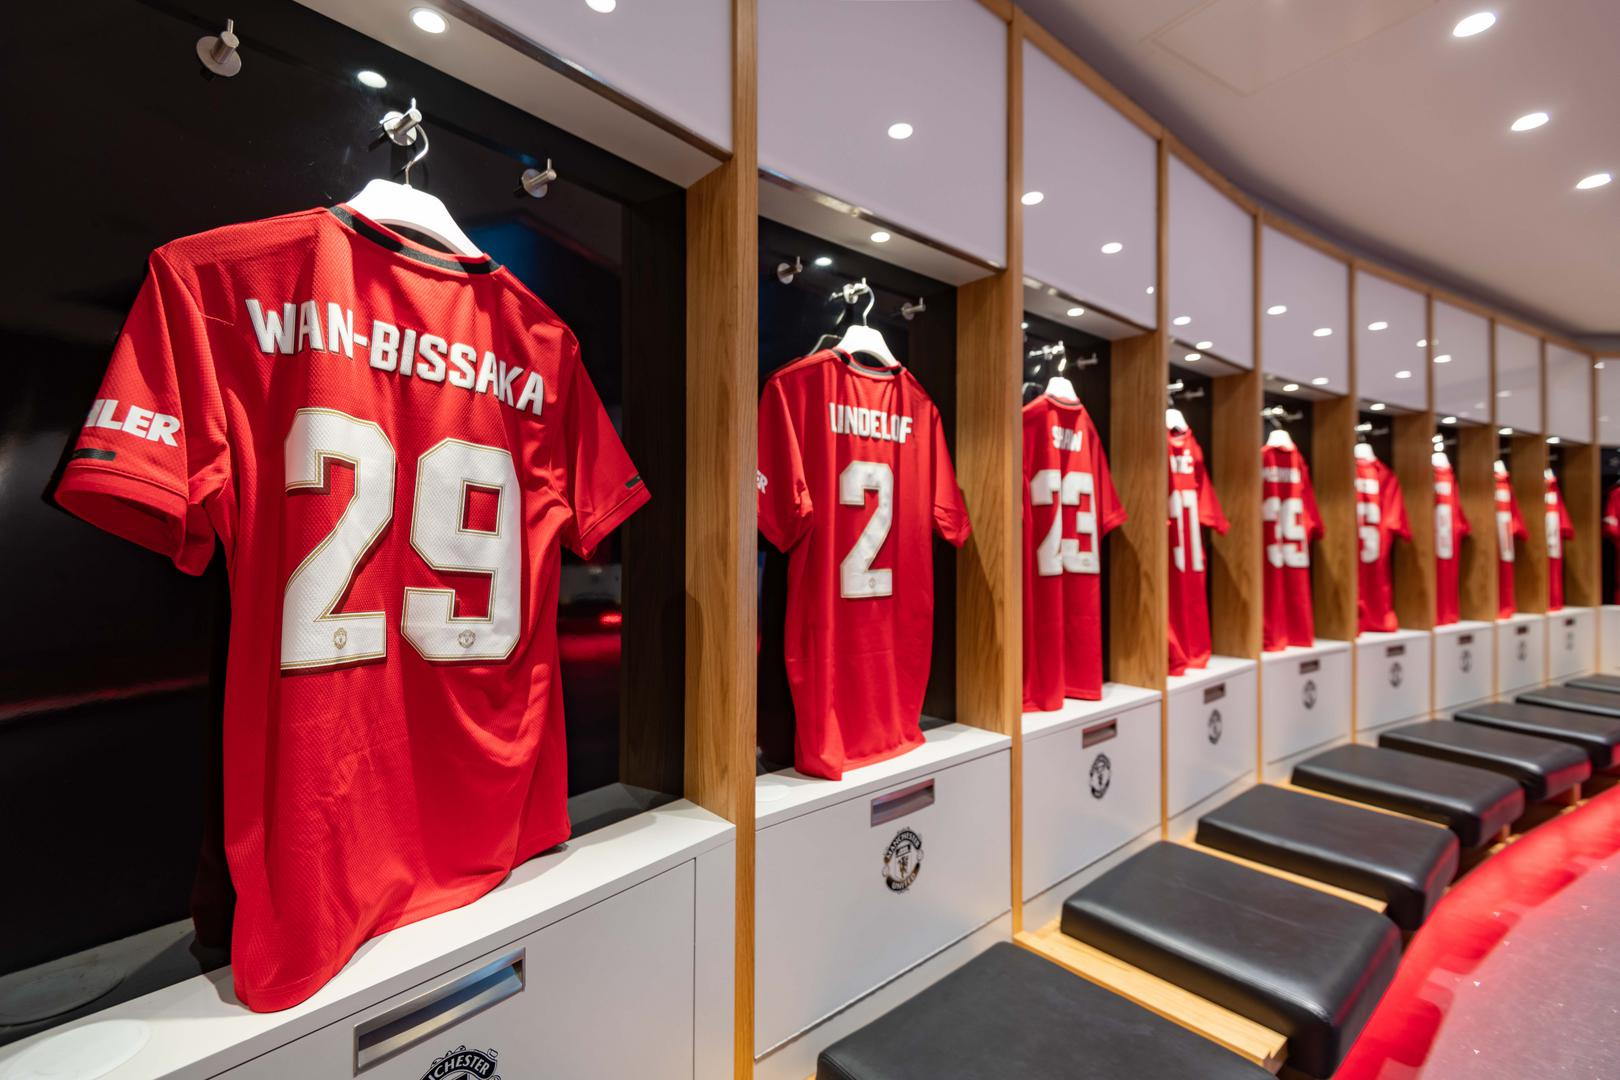 United shirts in the dressing room.